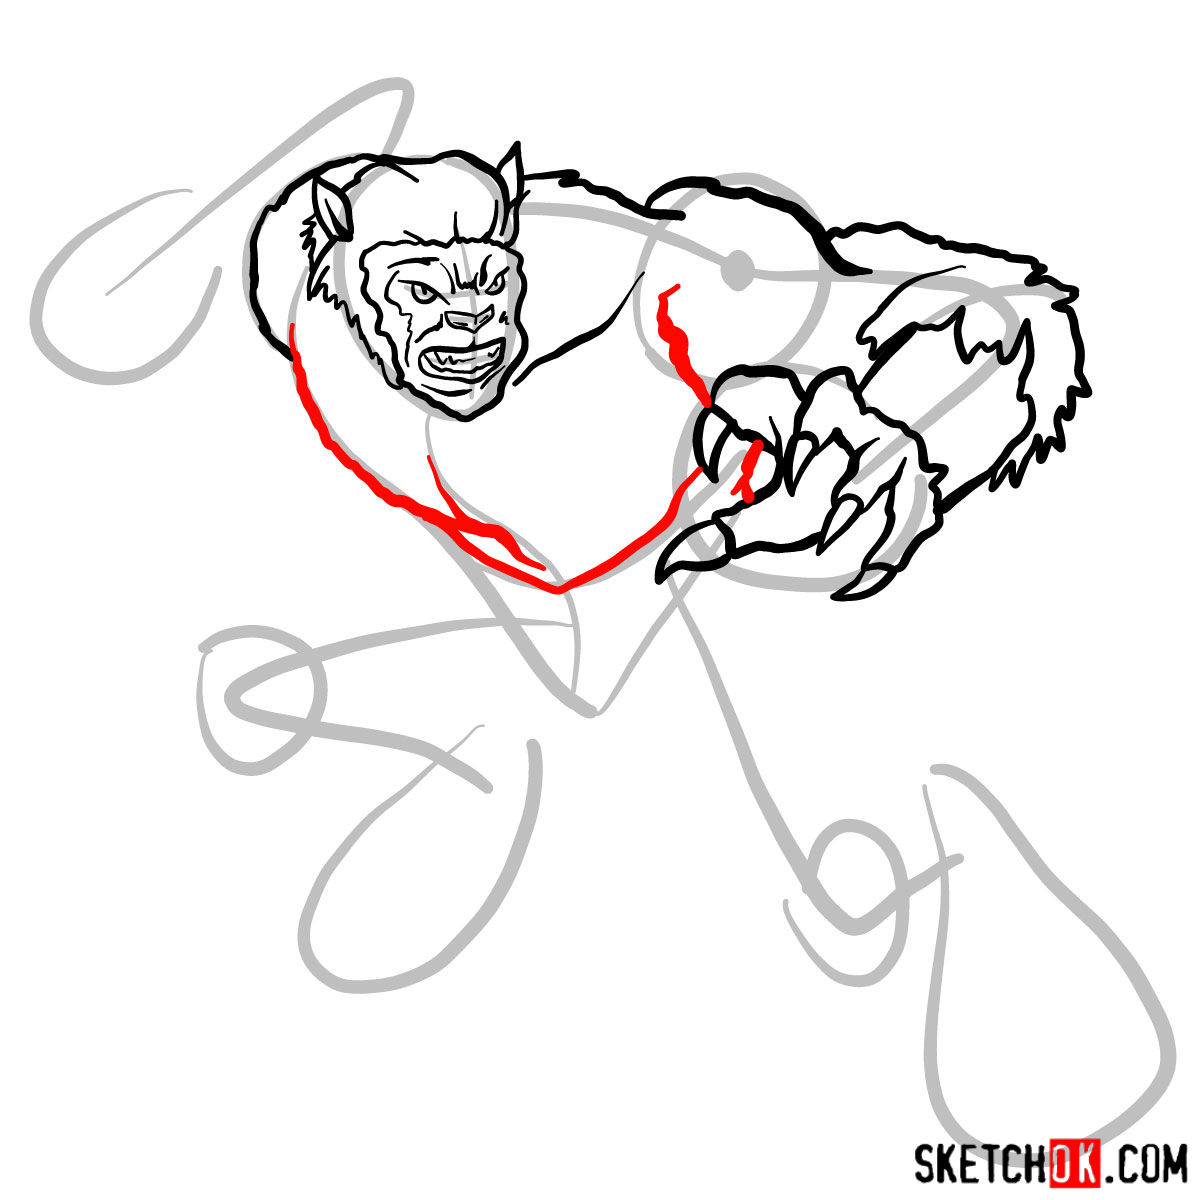 How to draw Beast (X-Men mutant) - step 08